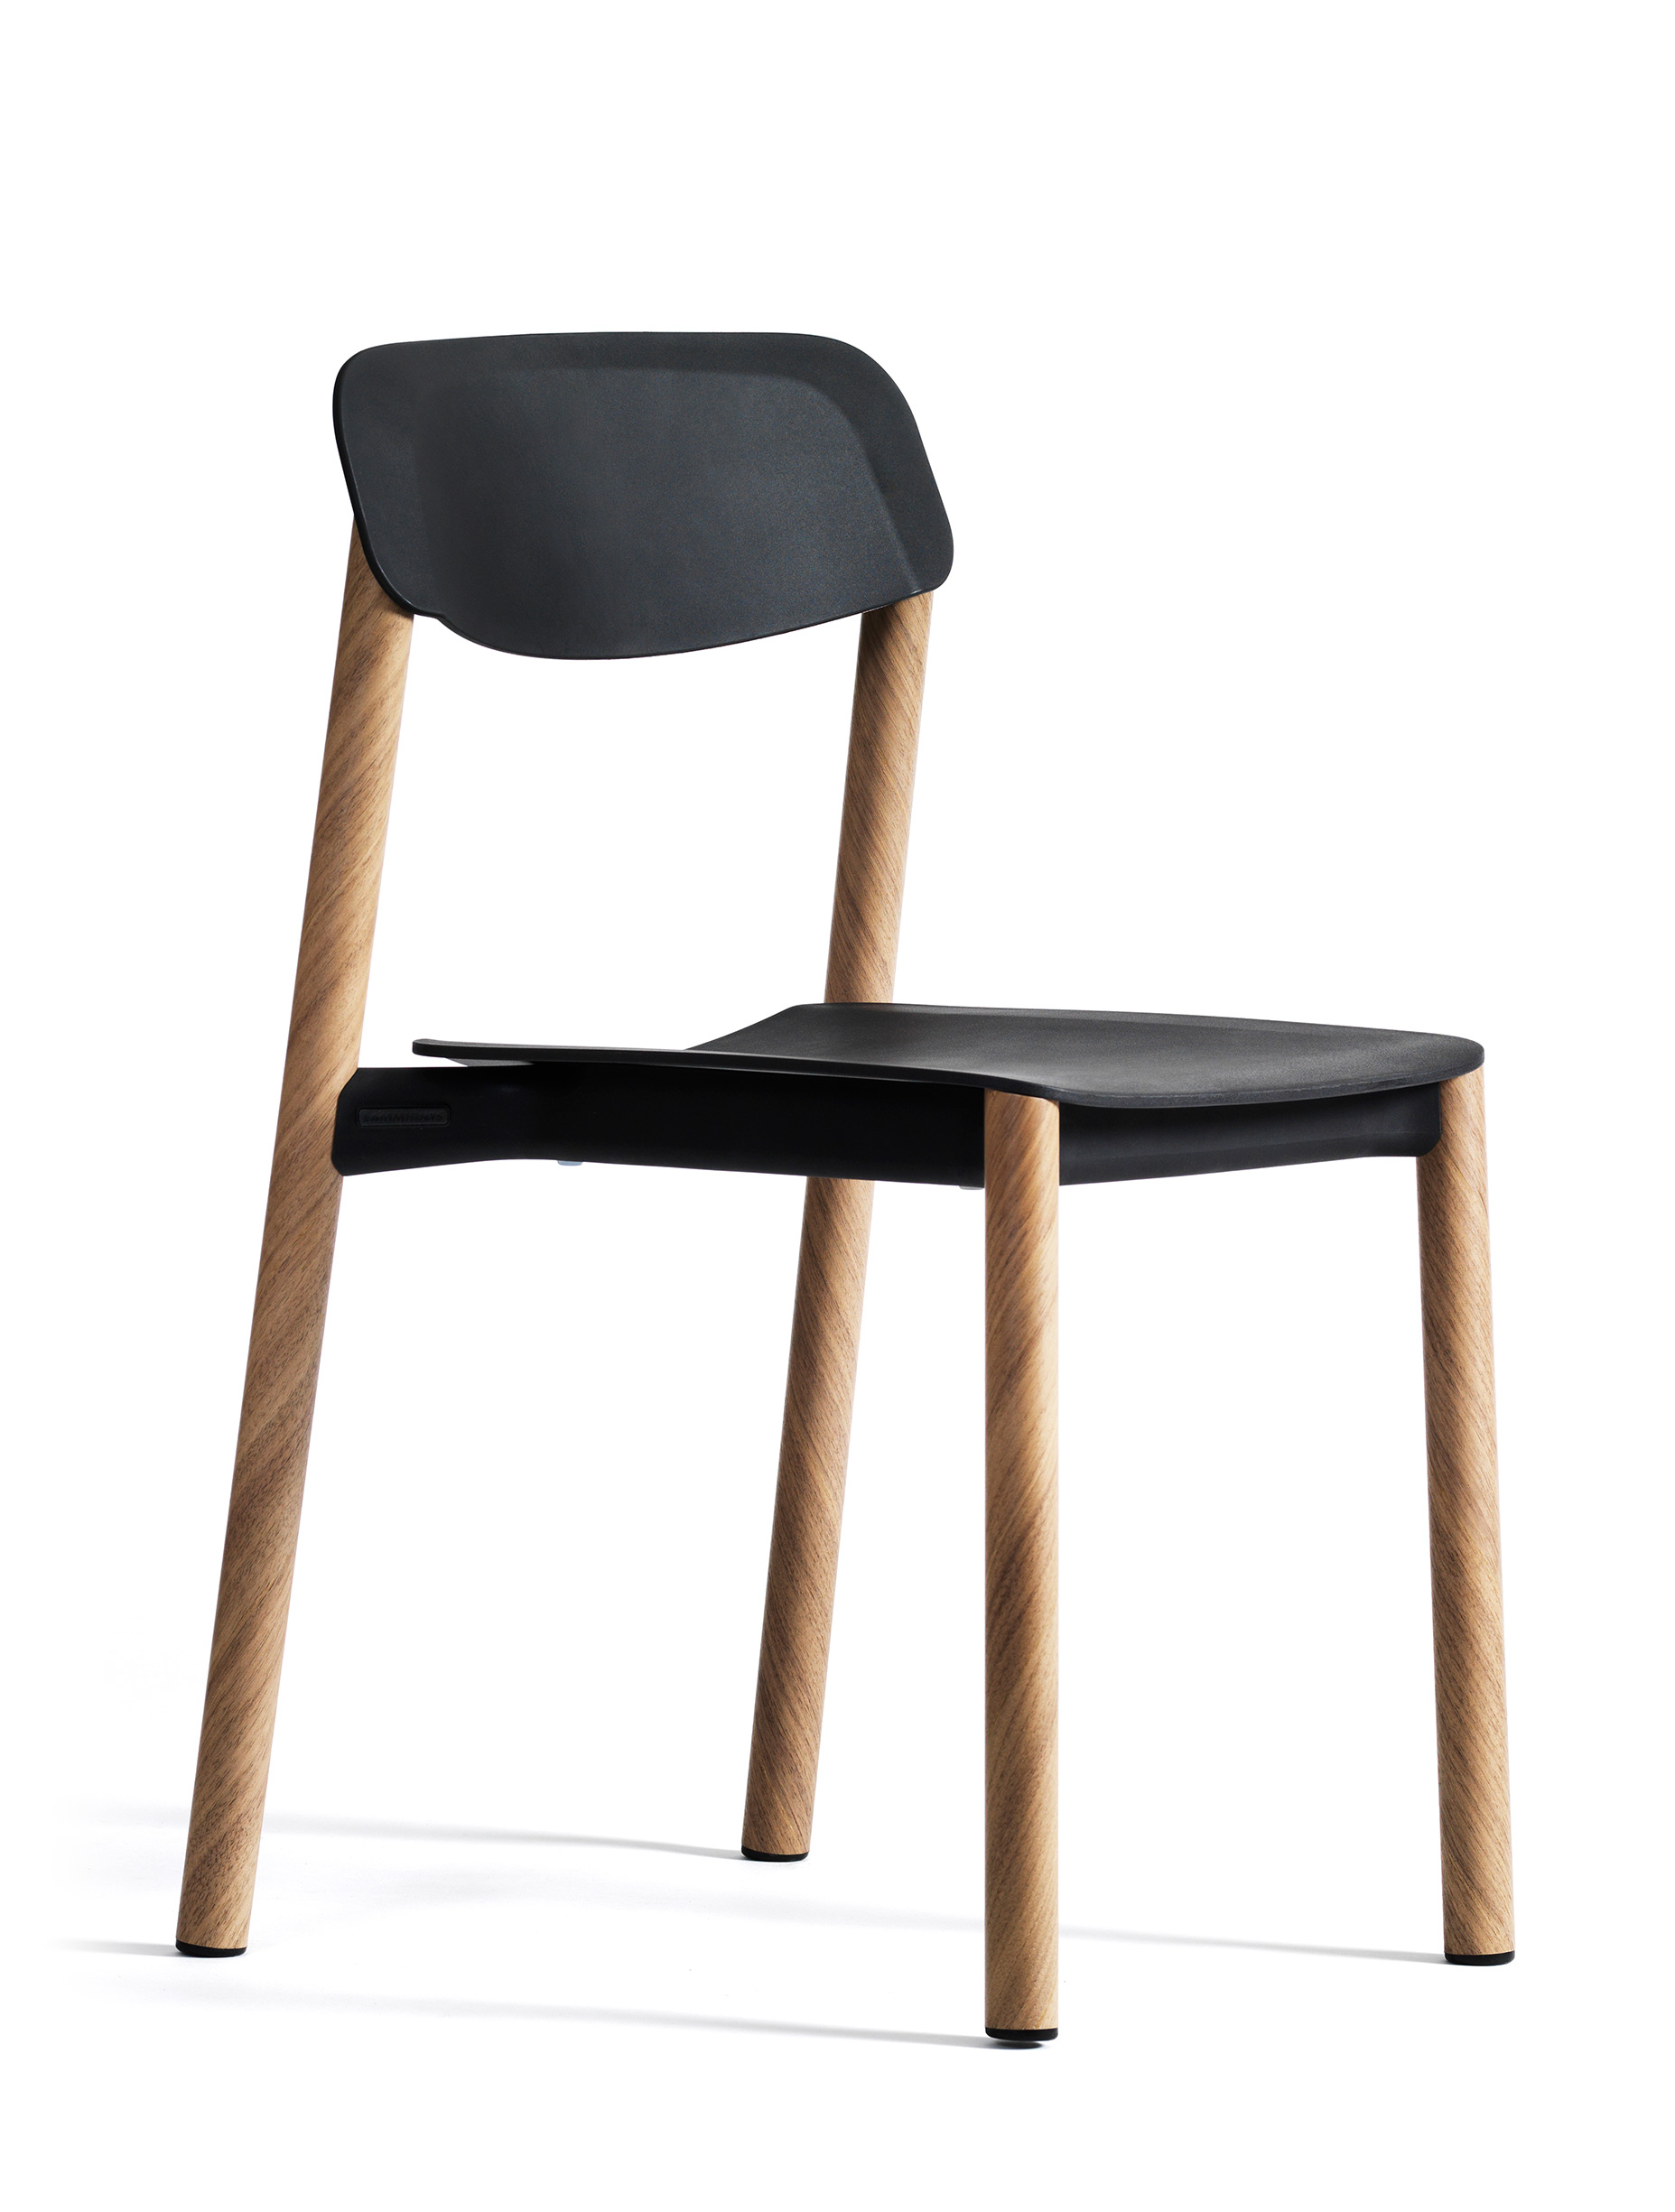 Superb img of  making it easy to take the chair apart and recycle the components with #956636 color and 1855x2450 pixels